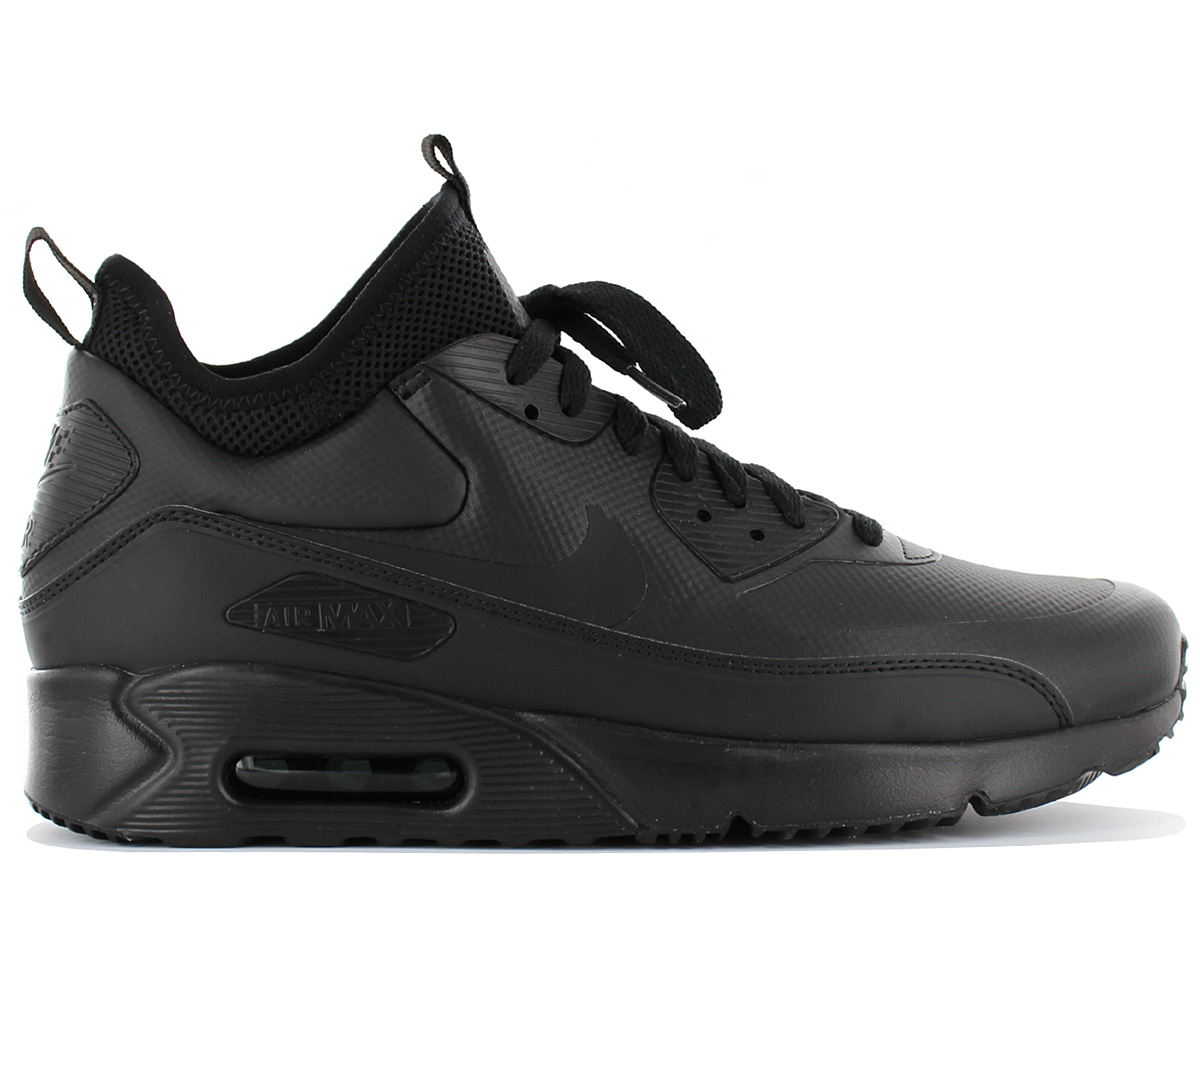 best website 071a3 57e5f Details about NEW Nike Air Max 90 Ultra Mid Winter 924458-004 Men  s Shoes  Trainers Sneakers S